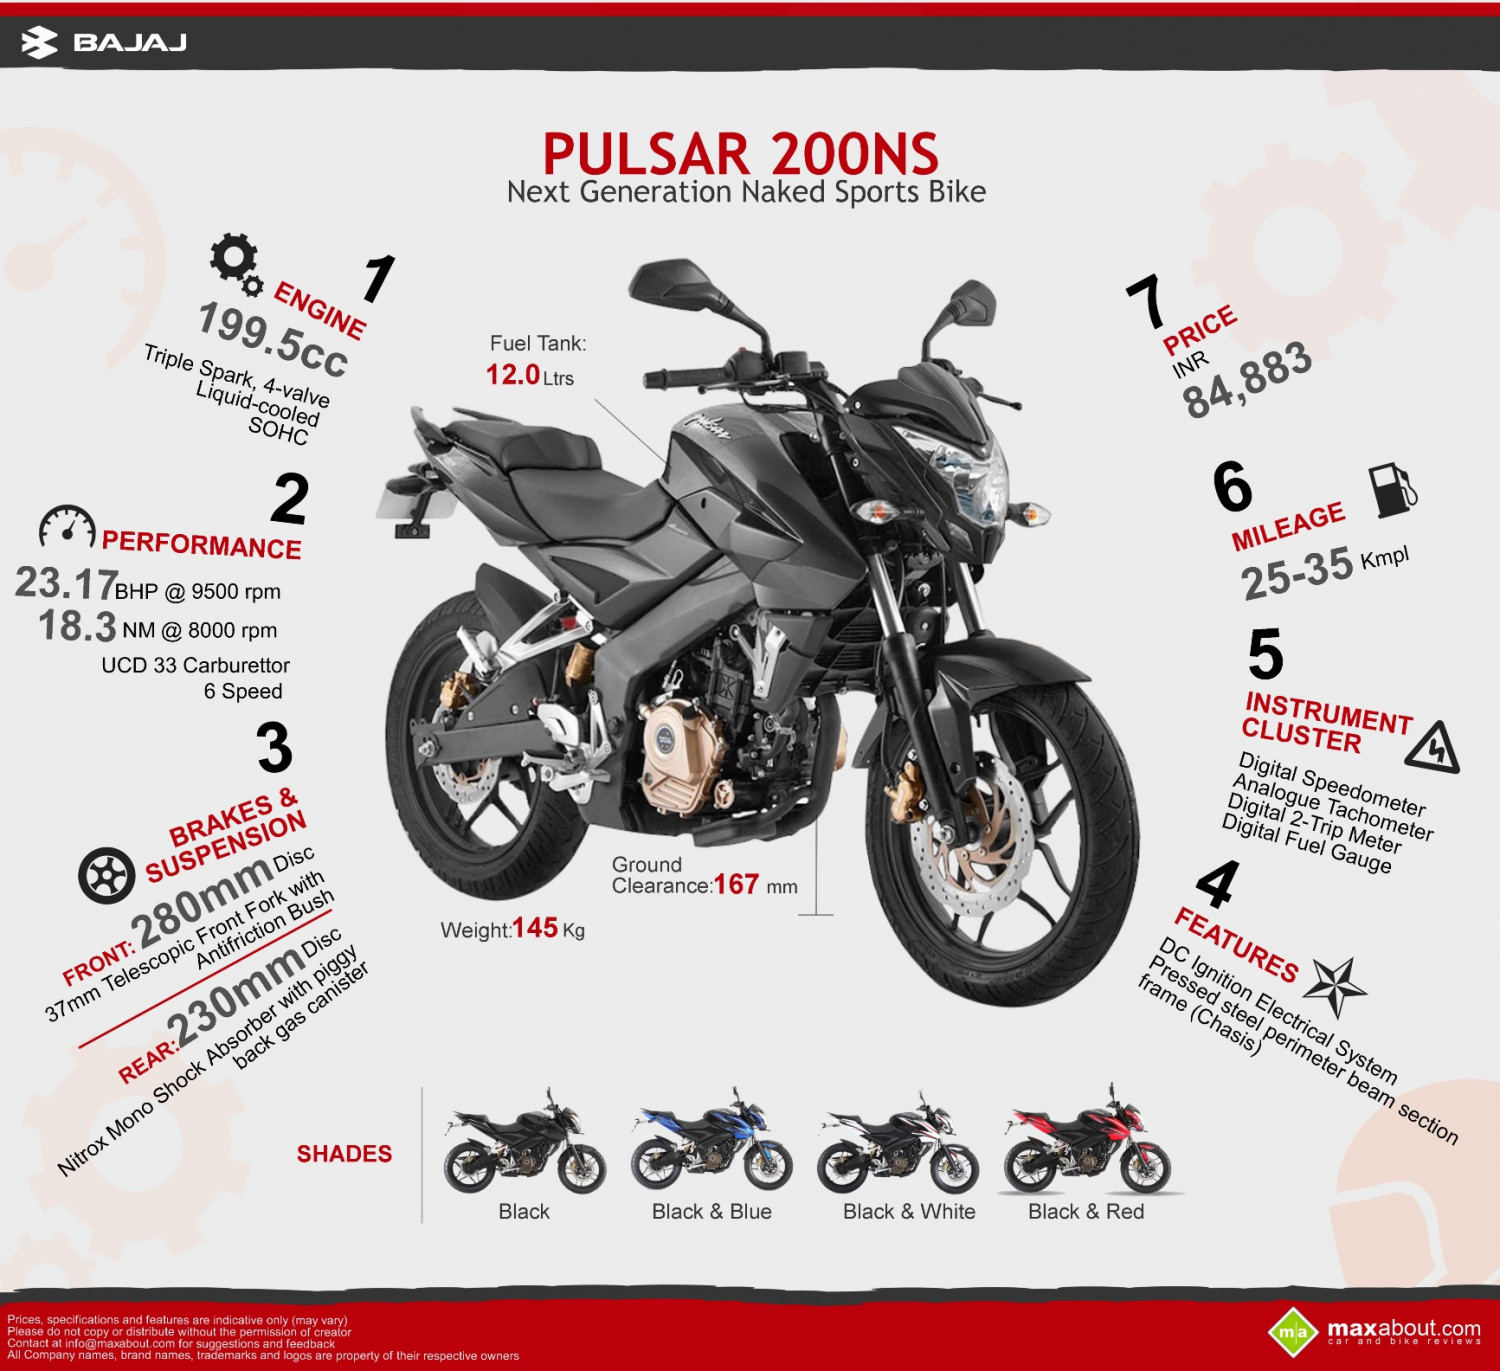 Bajaj Pulsar 200NS: Fast Facts Infographic